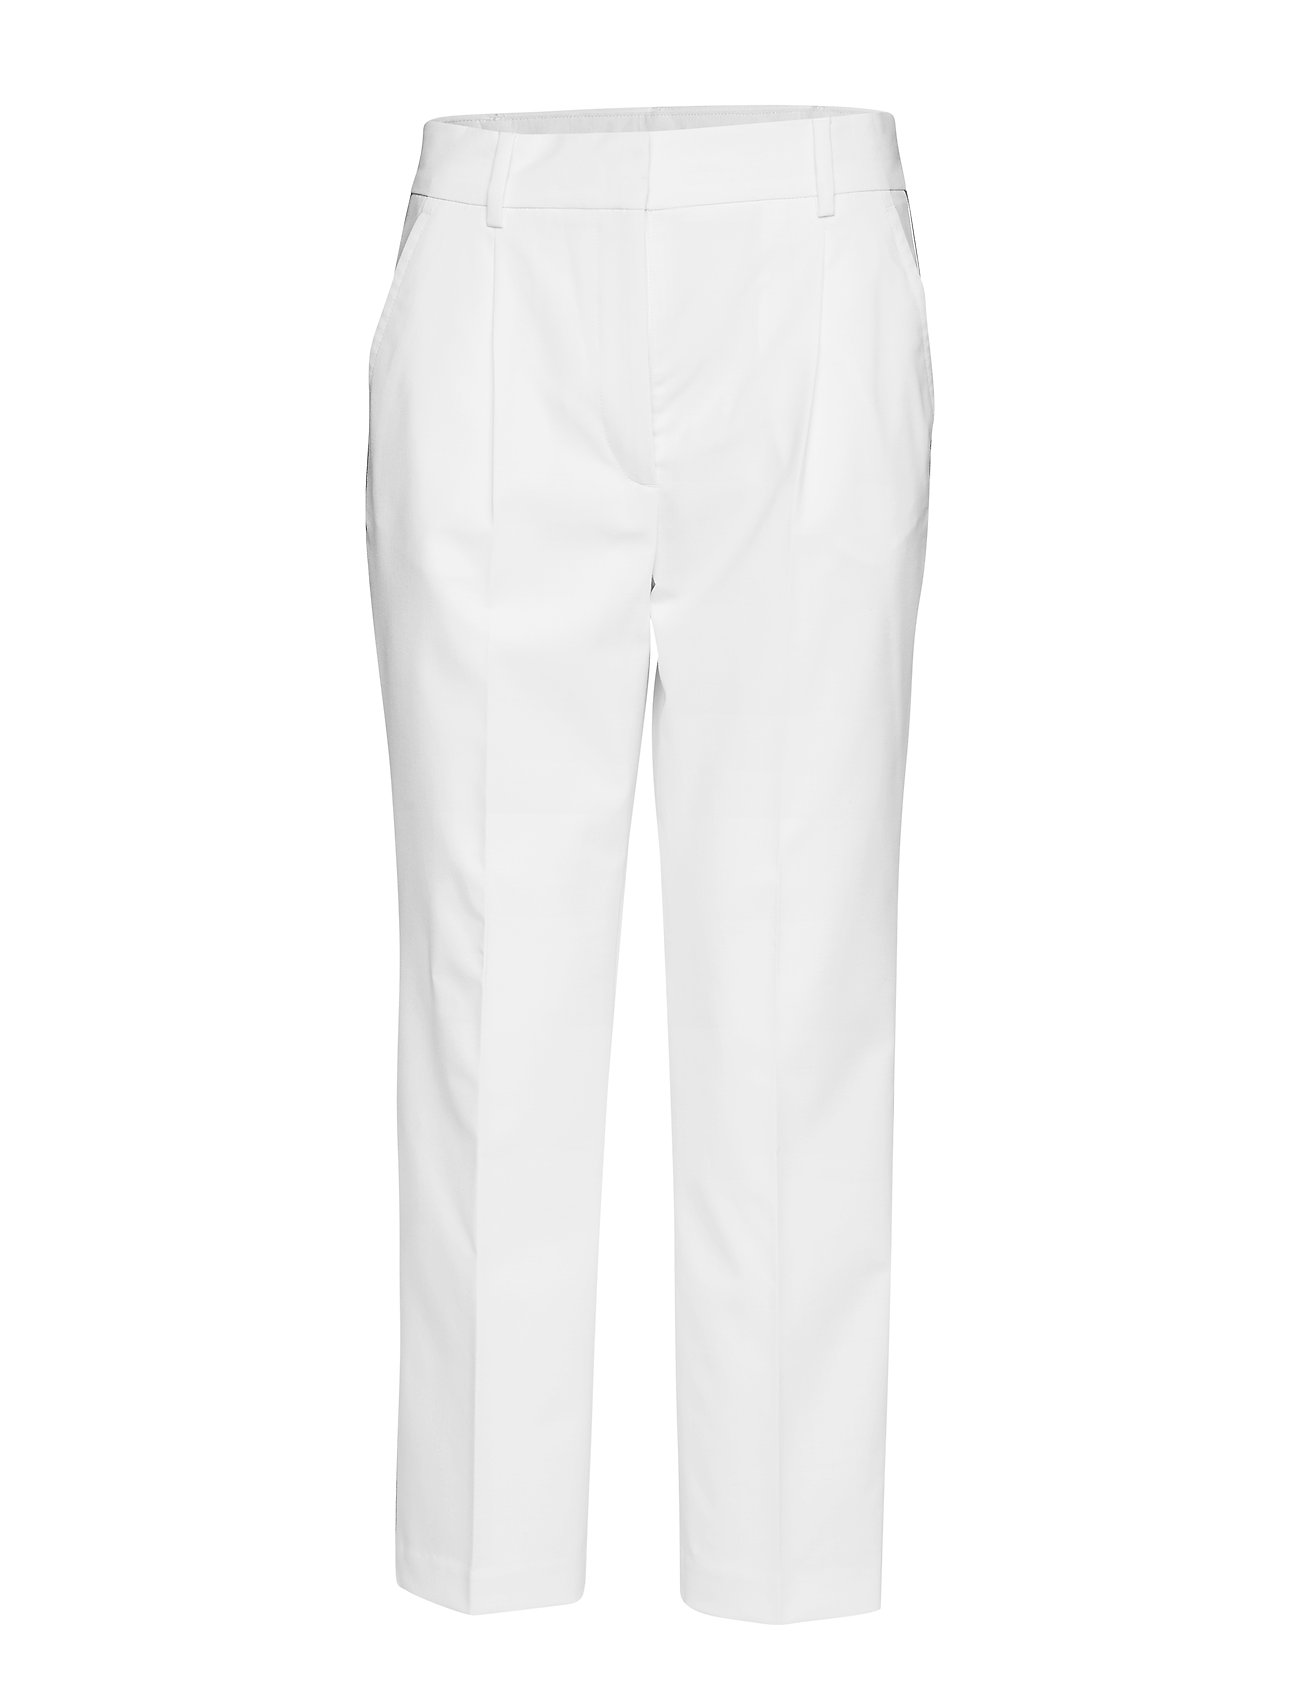 Tommy Hilfiger PETRA HW PLEATED ANK - CLASSIC WHITE